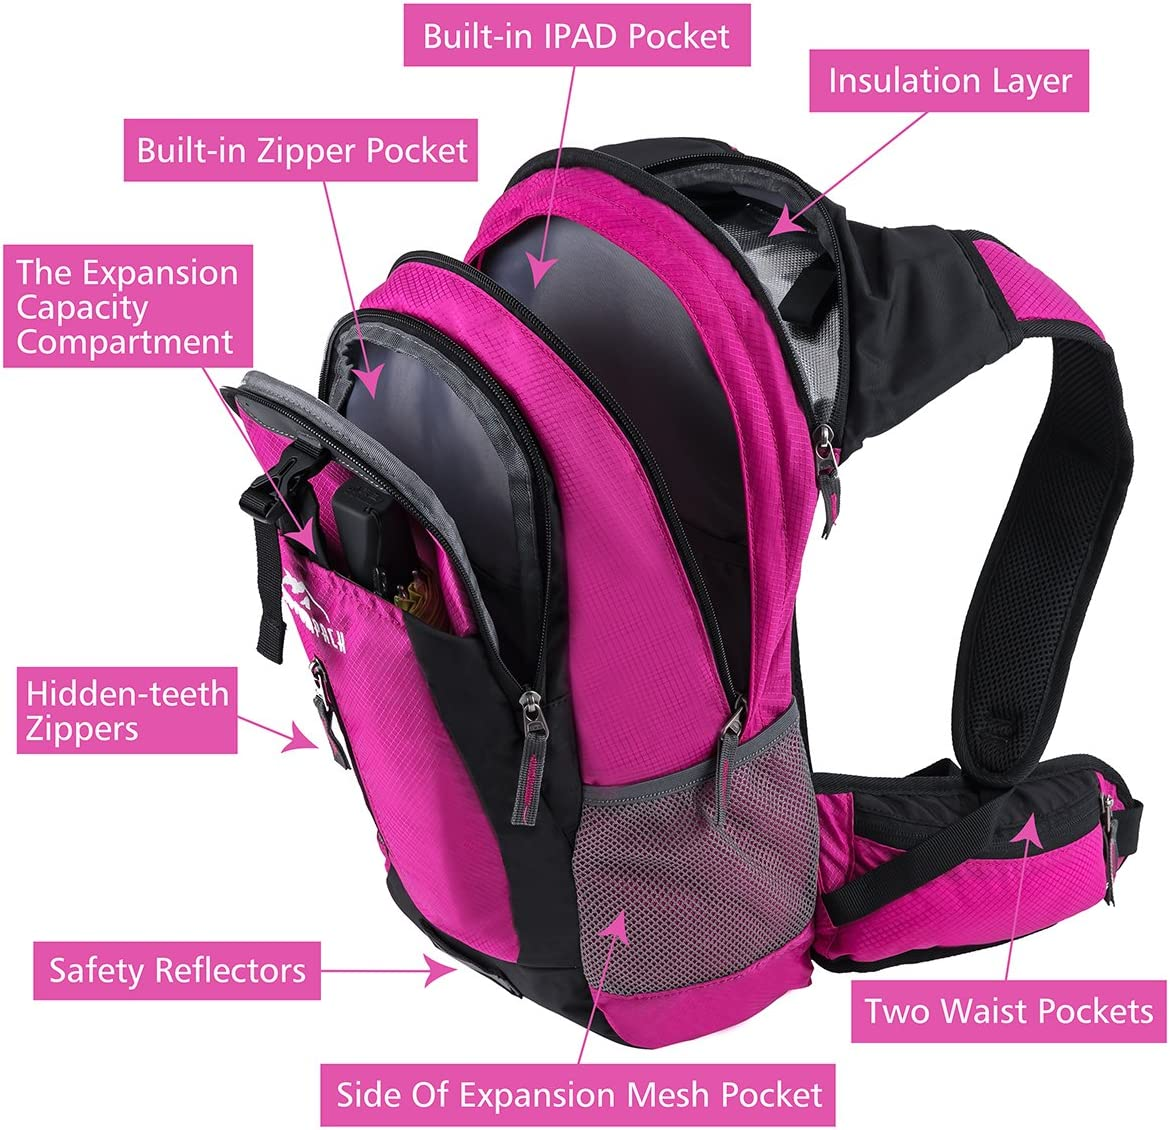 School Commuter Fits Men RUPUMPACK Insulated Hydration Backpack Pack with 2.5L BPA Free Bladder Lightweight Daypack Water Backpack for Hiking Running Cycling Kids Women 18L